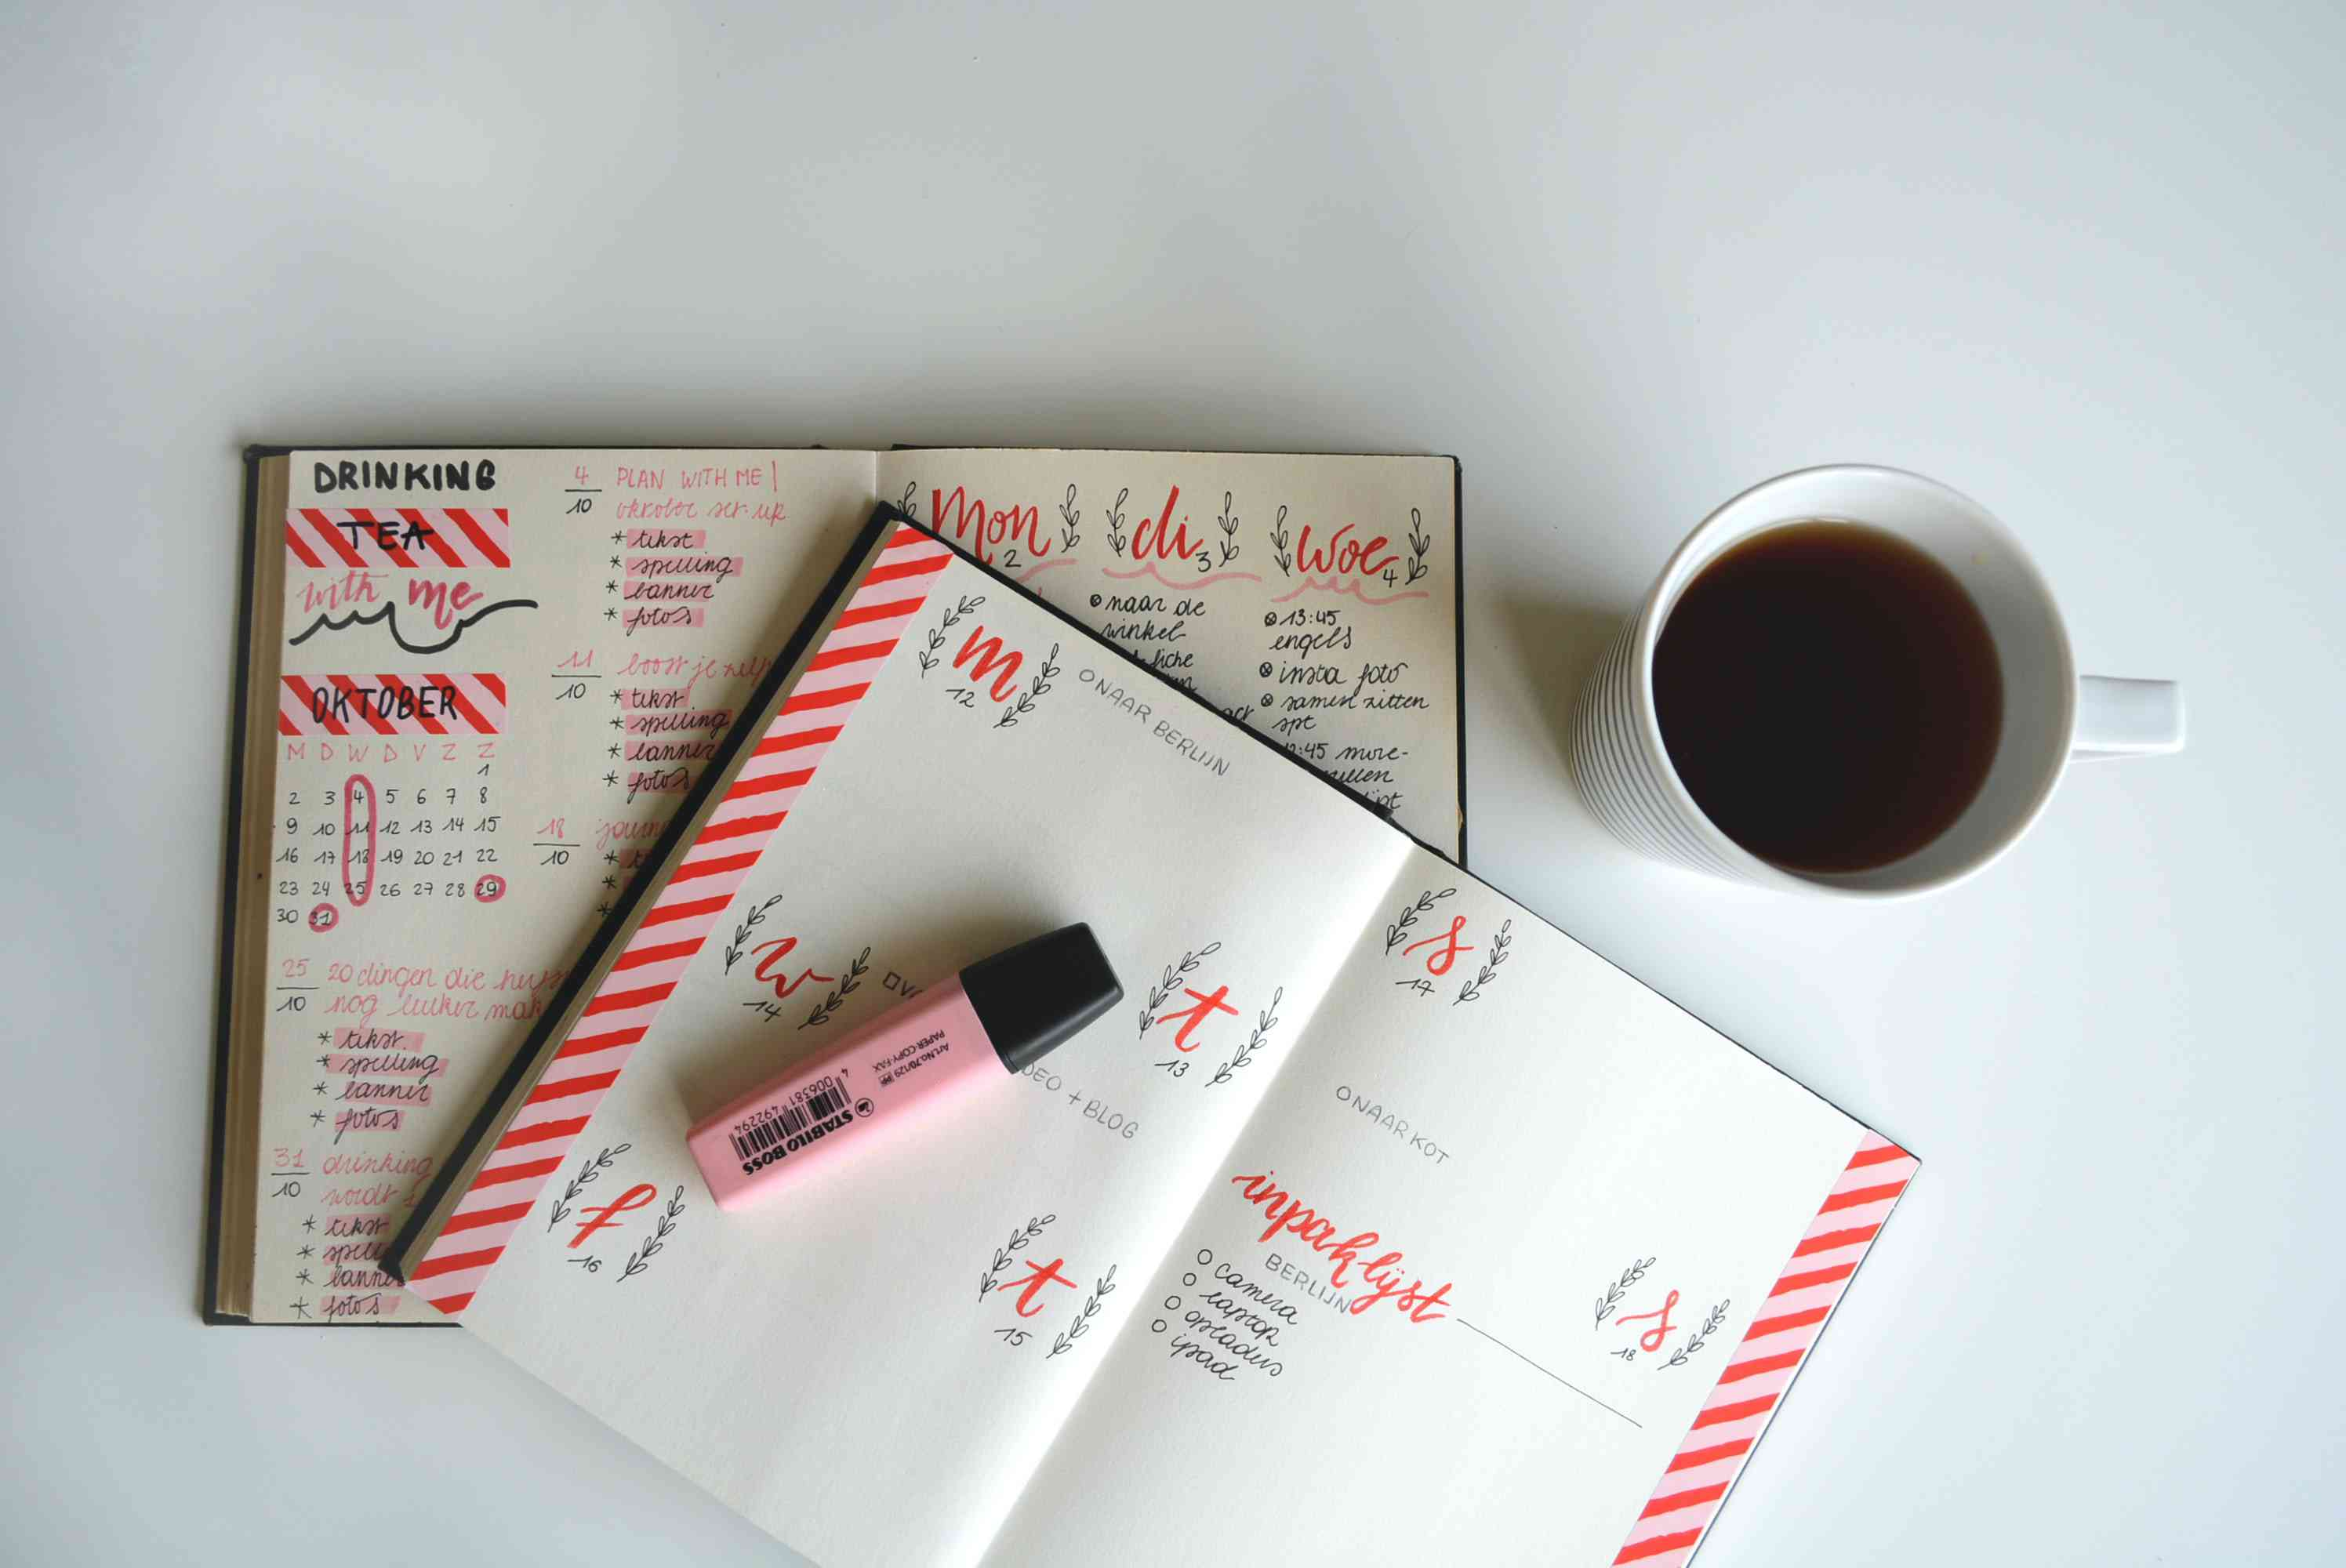 planner, highlighter, and coffee